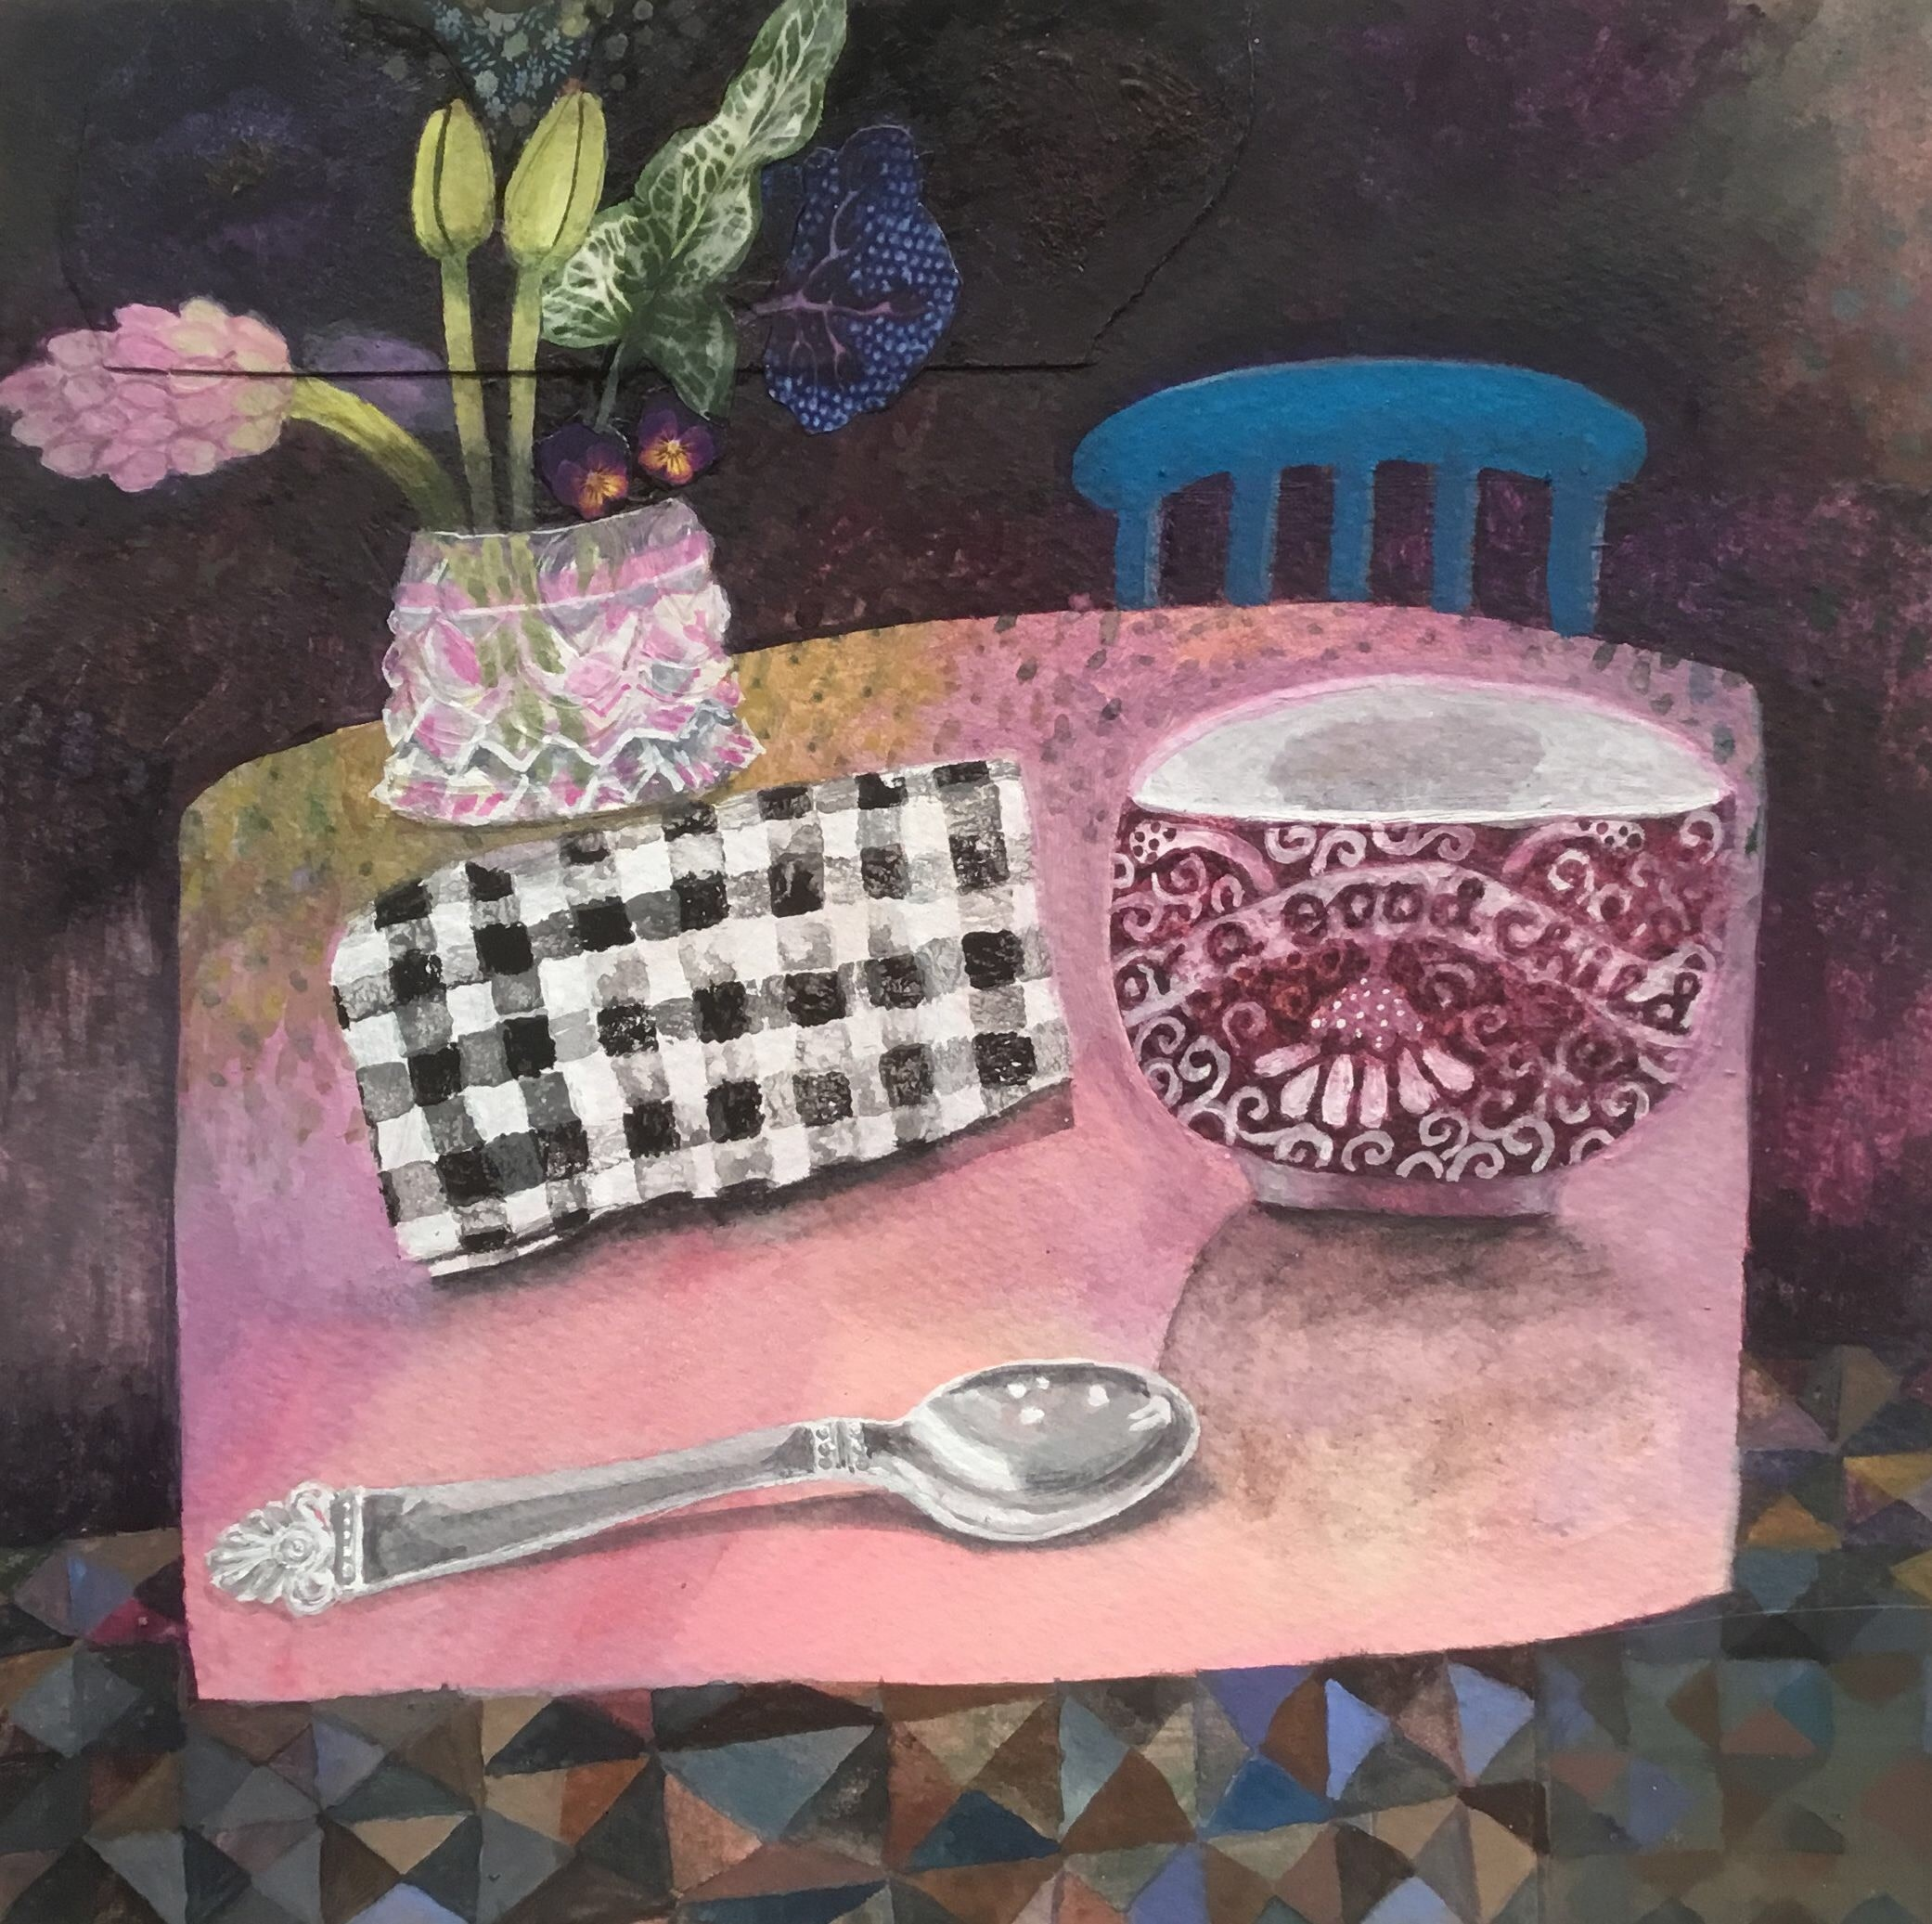 """<span class=""""link fancybox-details-link""""><a href=""""/artists/146-gertie-young/works/11673-gertie-young-for-a-good-child/"""">View Detail Page</a></span><div class=""""artist""""><span class=""""artist""""><strong>Gertie Young</strong></span></div><div class=""""title""""><em>For a Good Child</em></div><div class=""""medium"""">watercolour, gouache & collage</div><div class=""""dimensions"""">Artwork: 23 x 23 cm<br /> Frame: 34 x 34 cm<br /> <br /> <br /> </div><div class=""""price"""">£360.00</div>"""